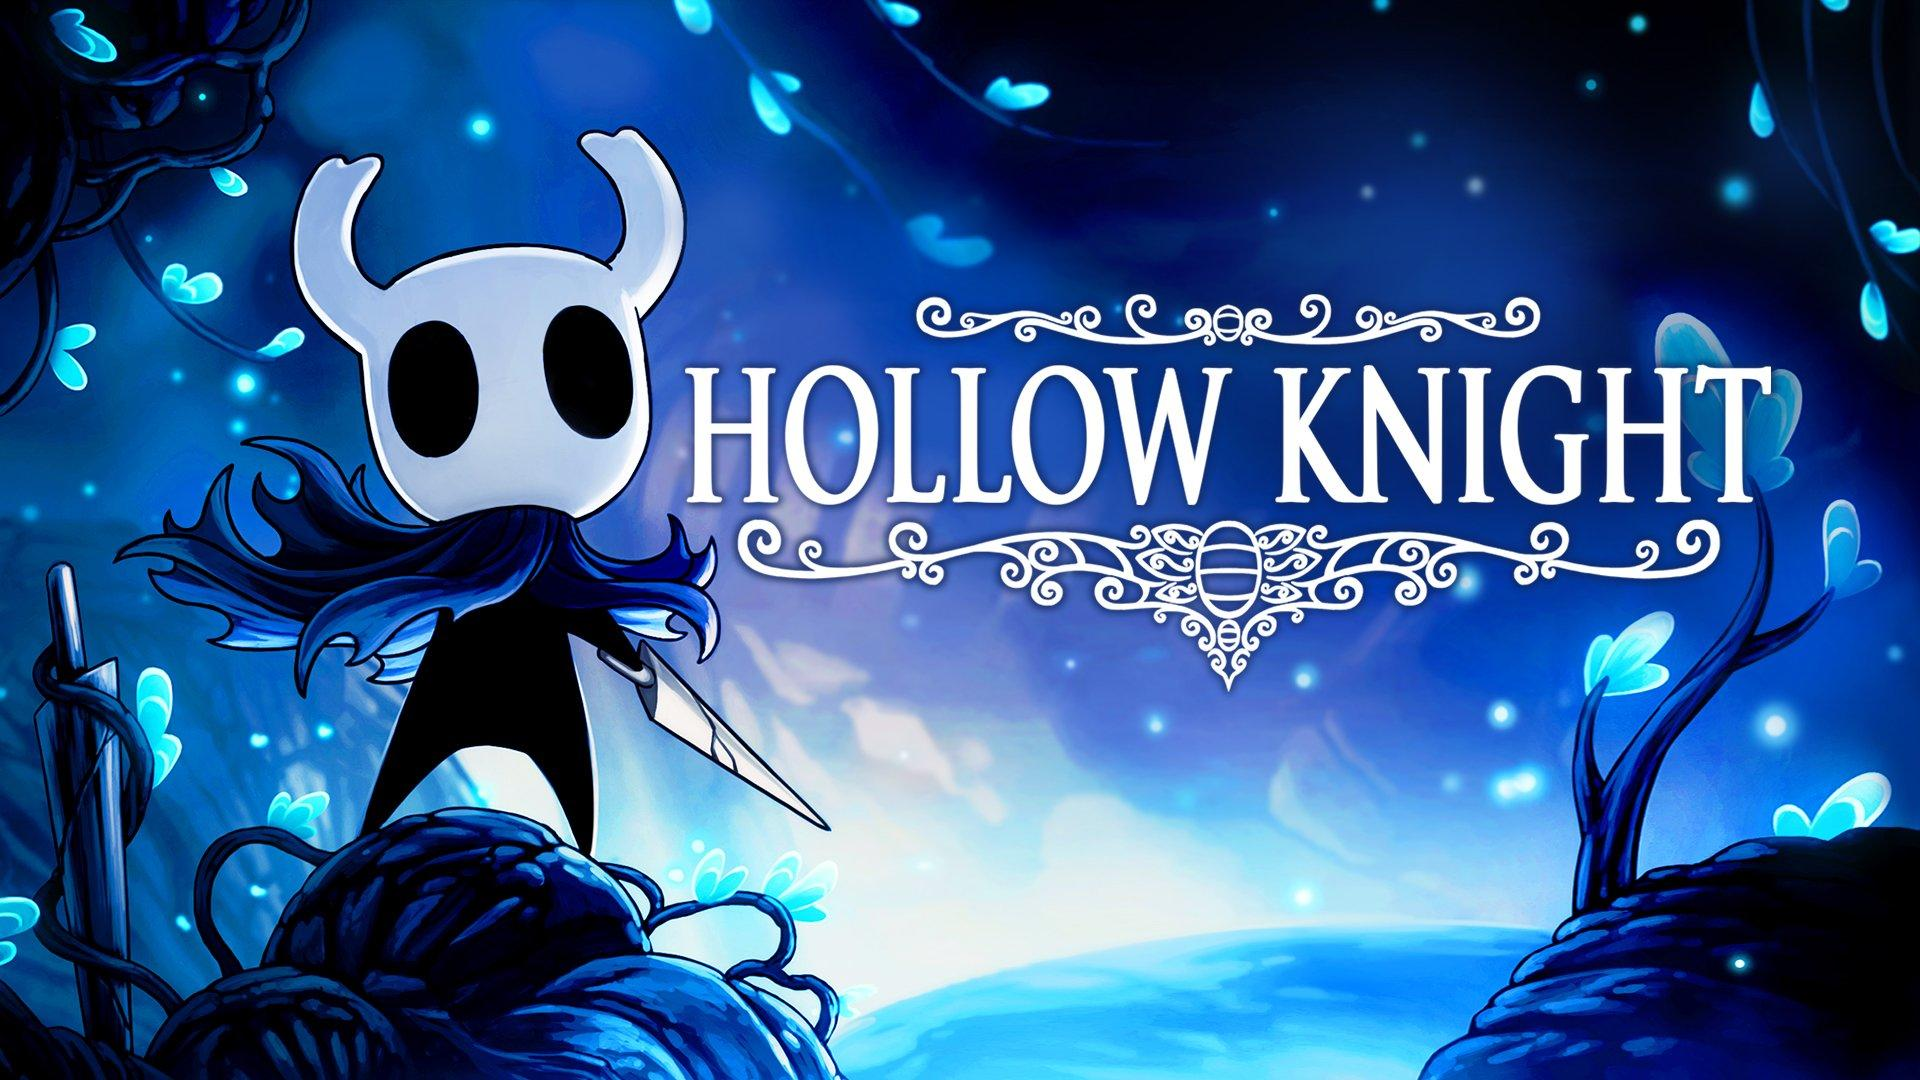 Hollow Knight: Silksong Wallpapers - Wallpaper Cave